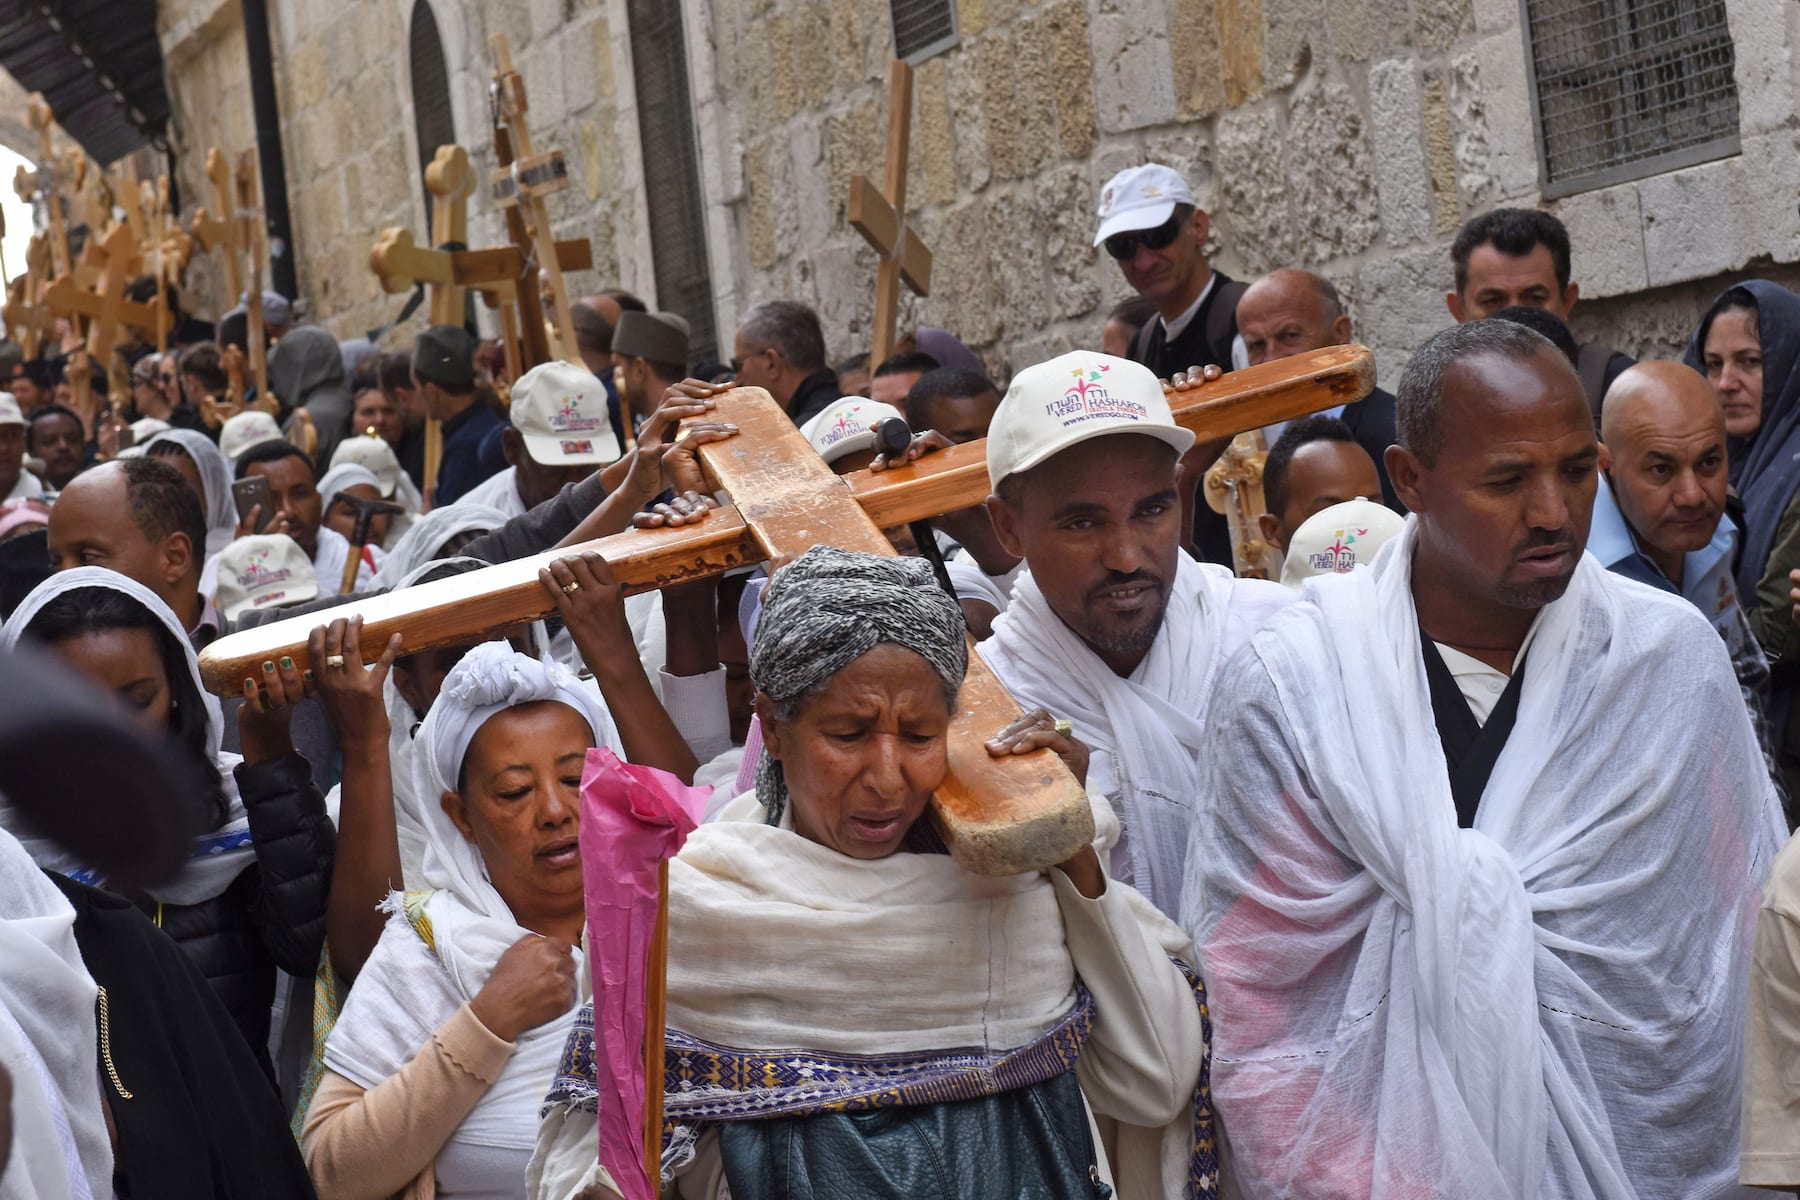 Christians from Ethiopia carry cross during procession Via Dolorosa in Jerusalem